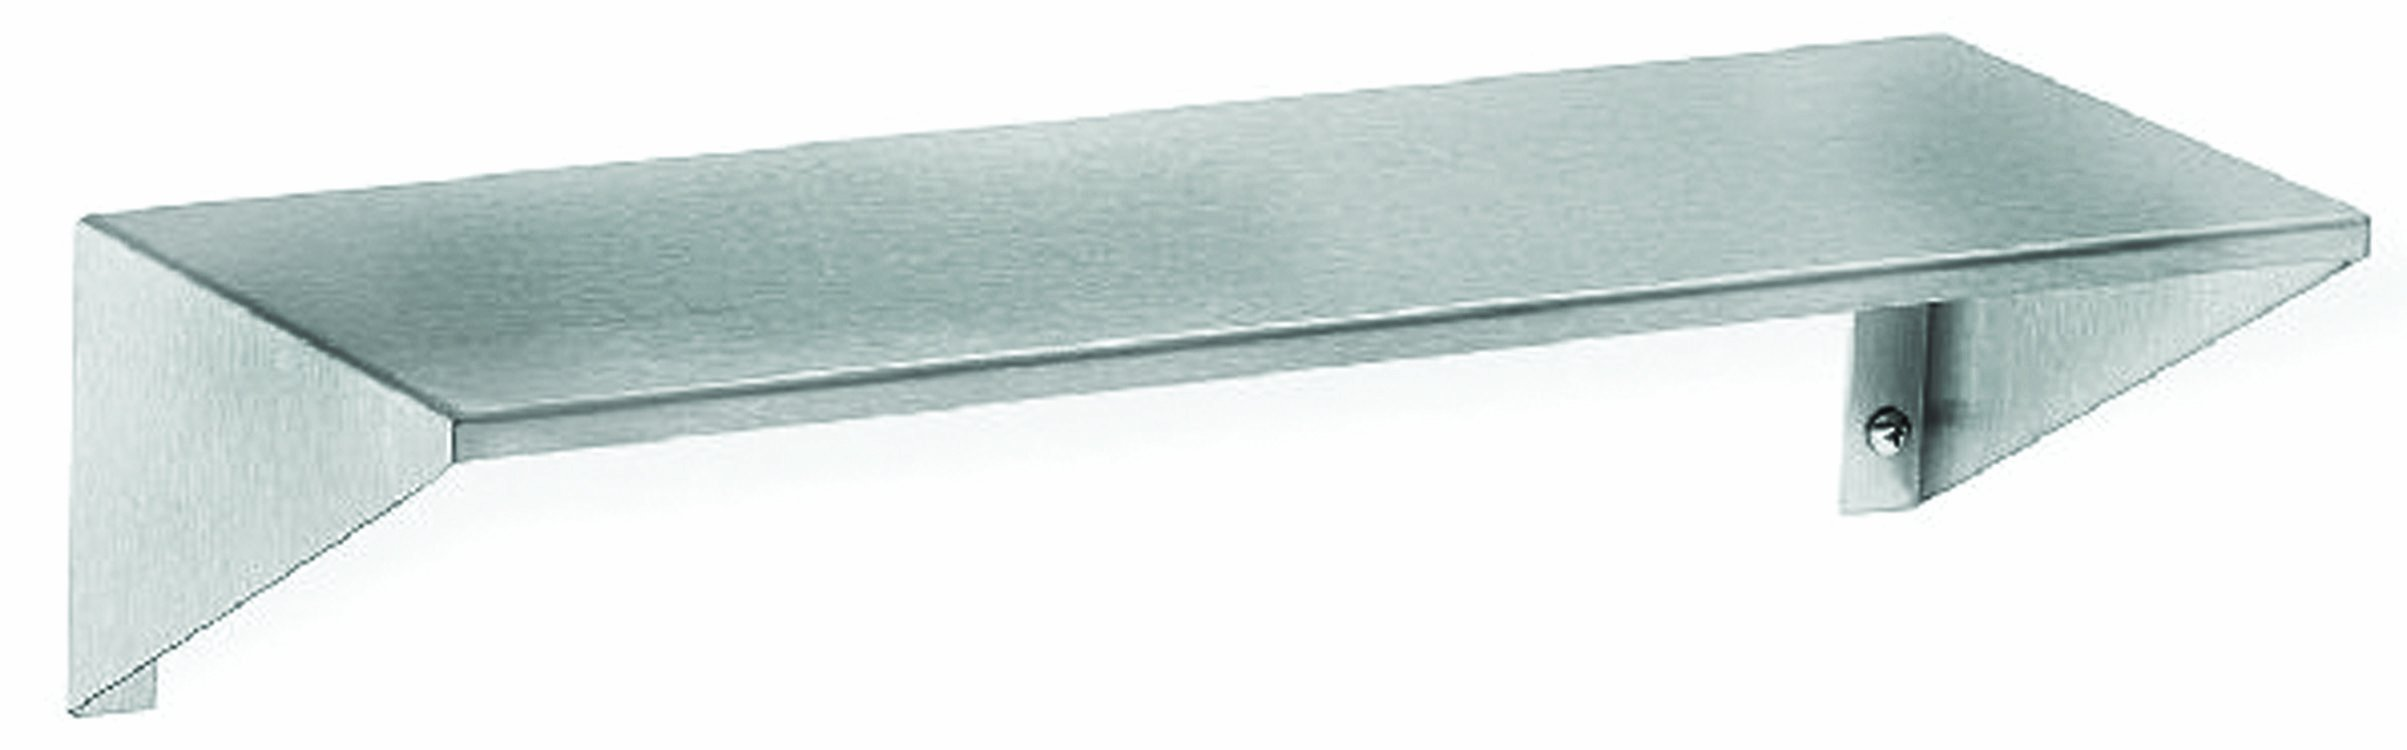 Bradley 758-024000 Stainless Steel Surface Mount Shelf with Integral End Brackets, 24'' Length x 8'' Depth